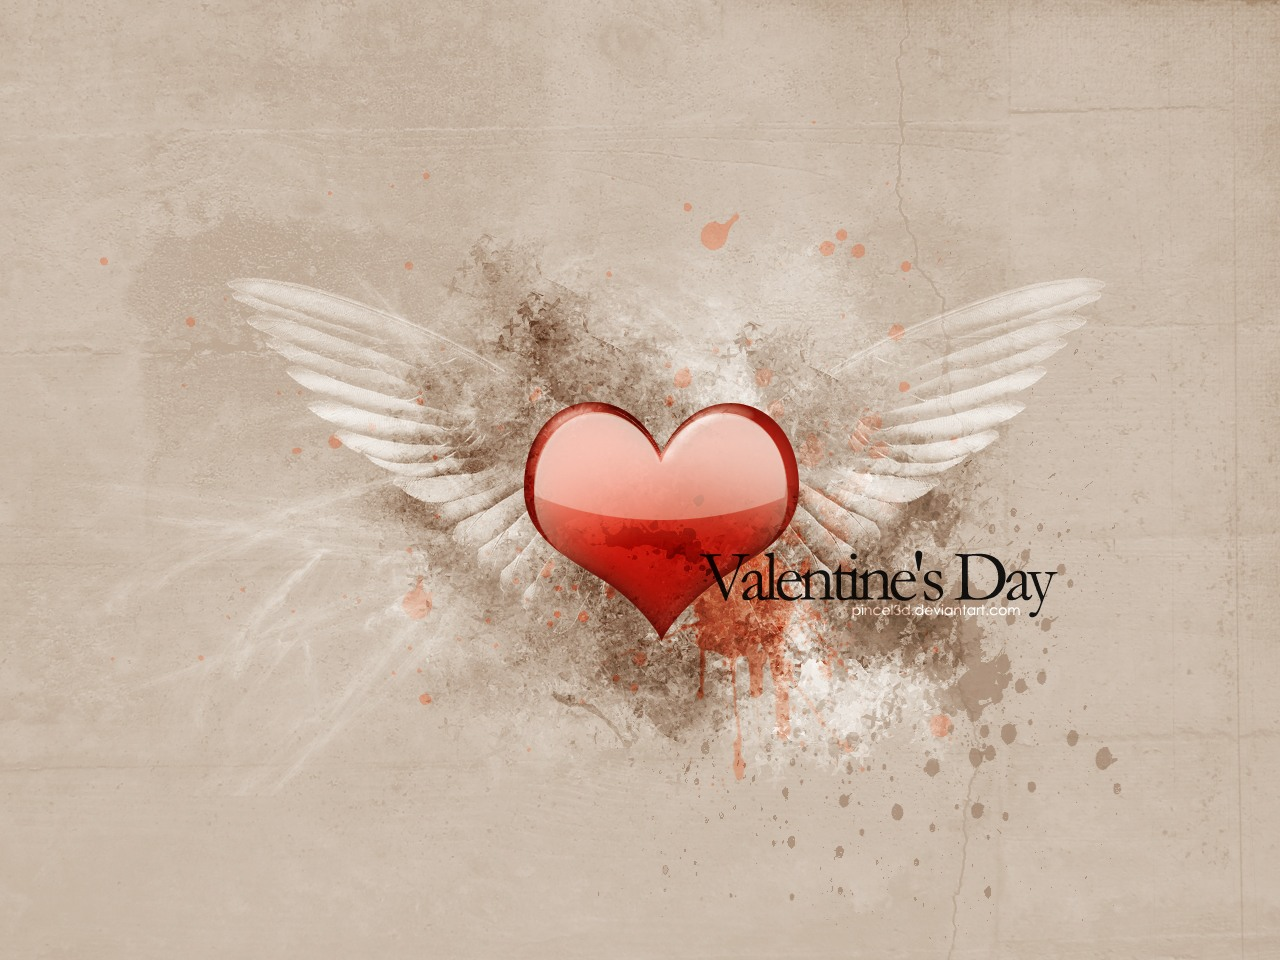 Valentines Day Hd Wallpapers Valentine Love Wallpaper Mobile View